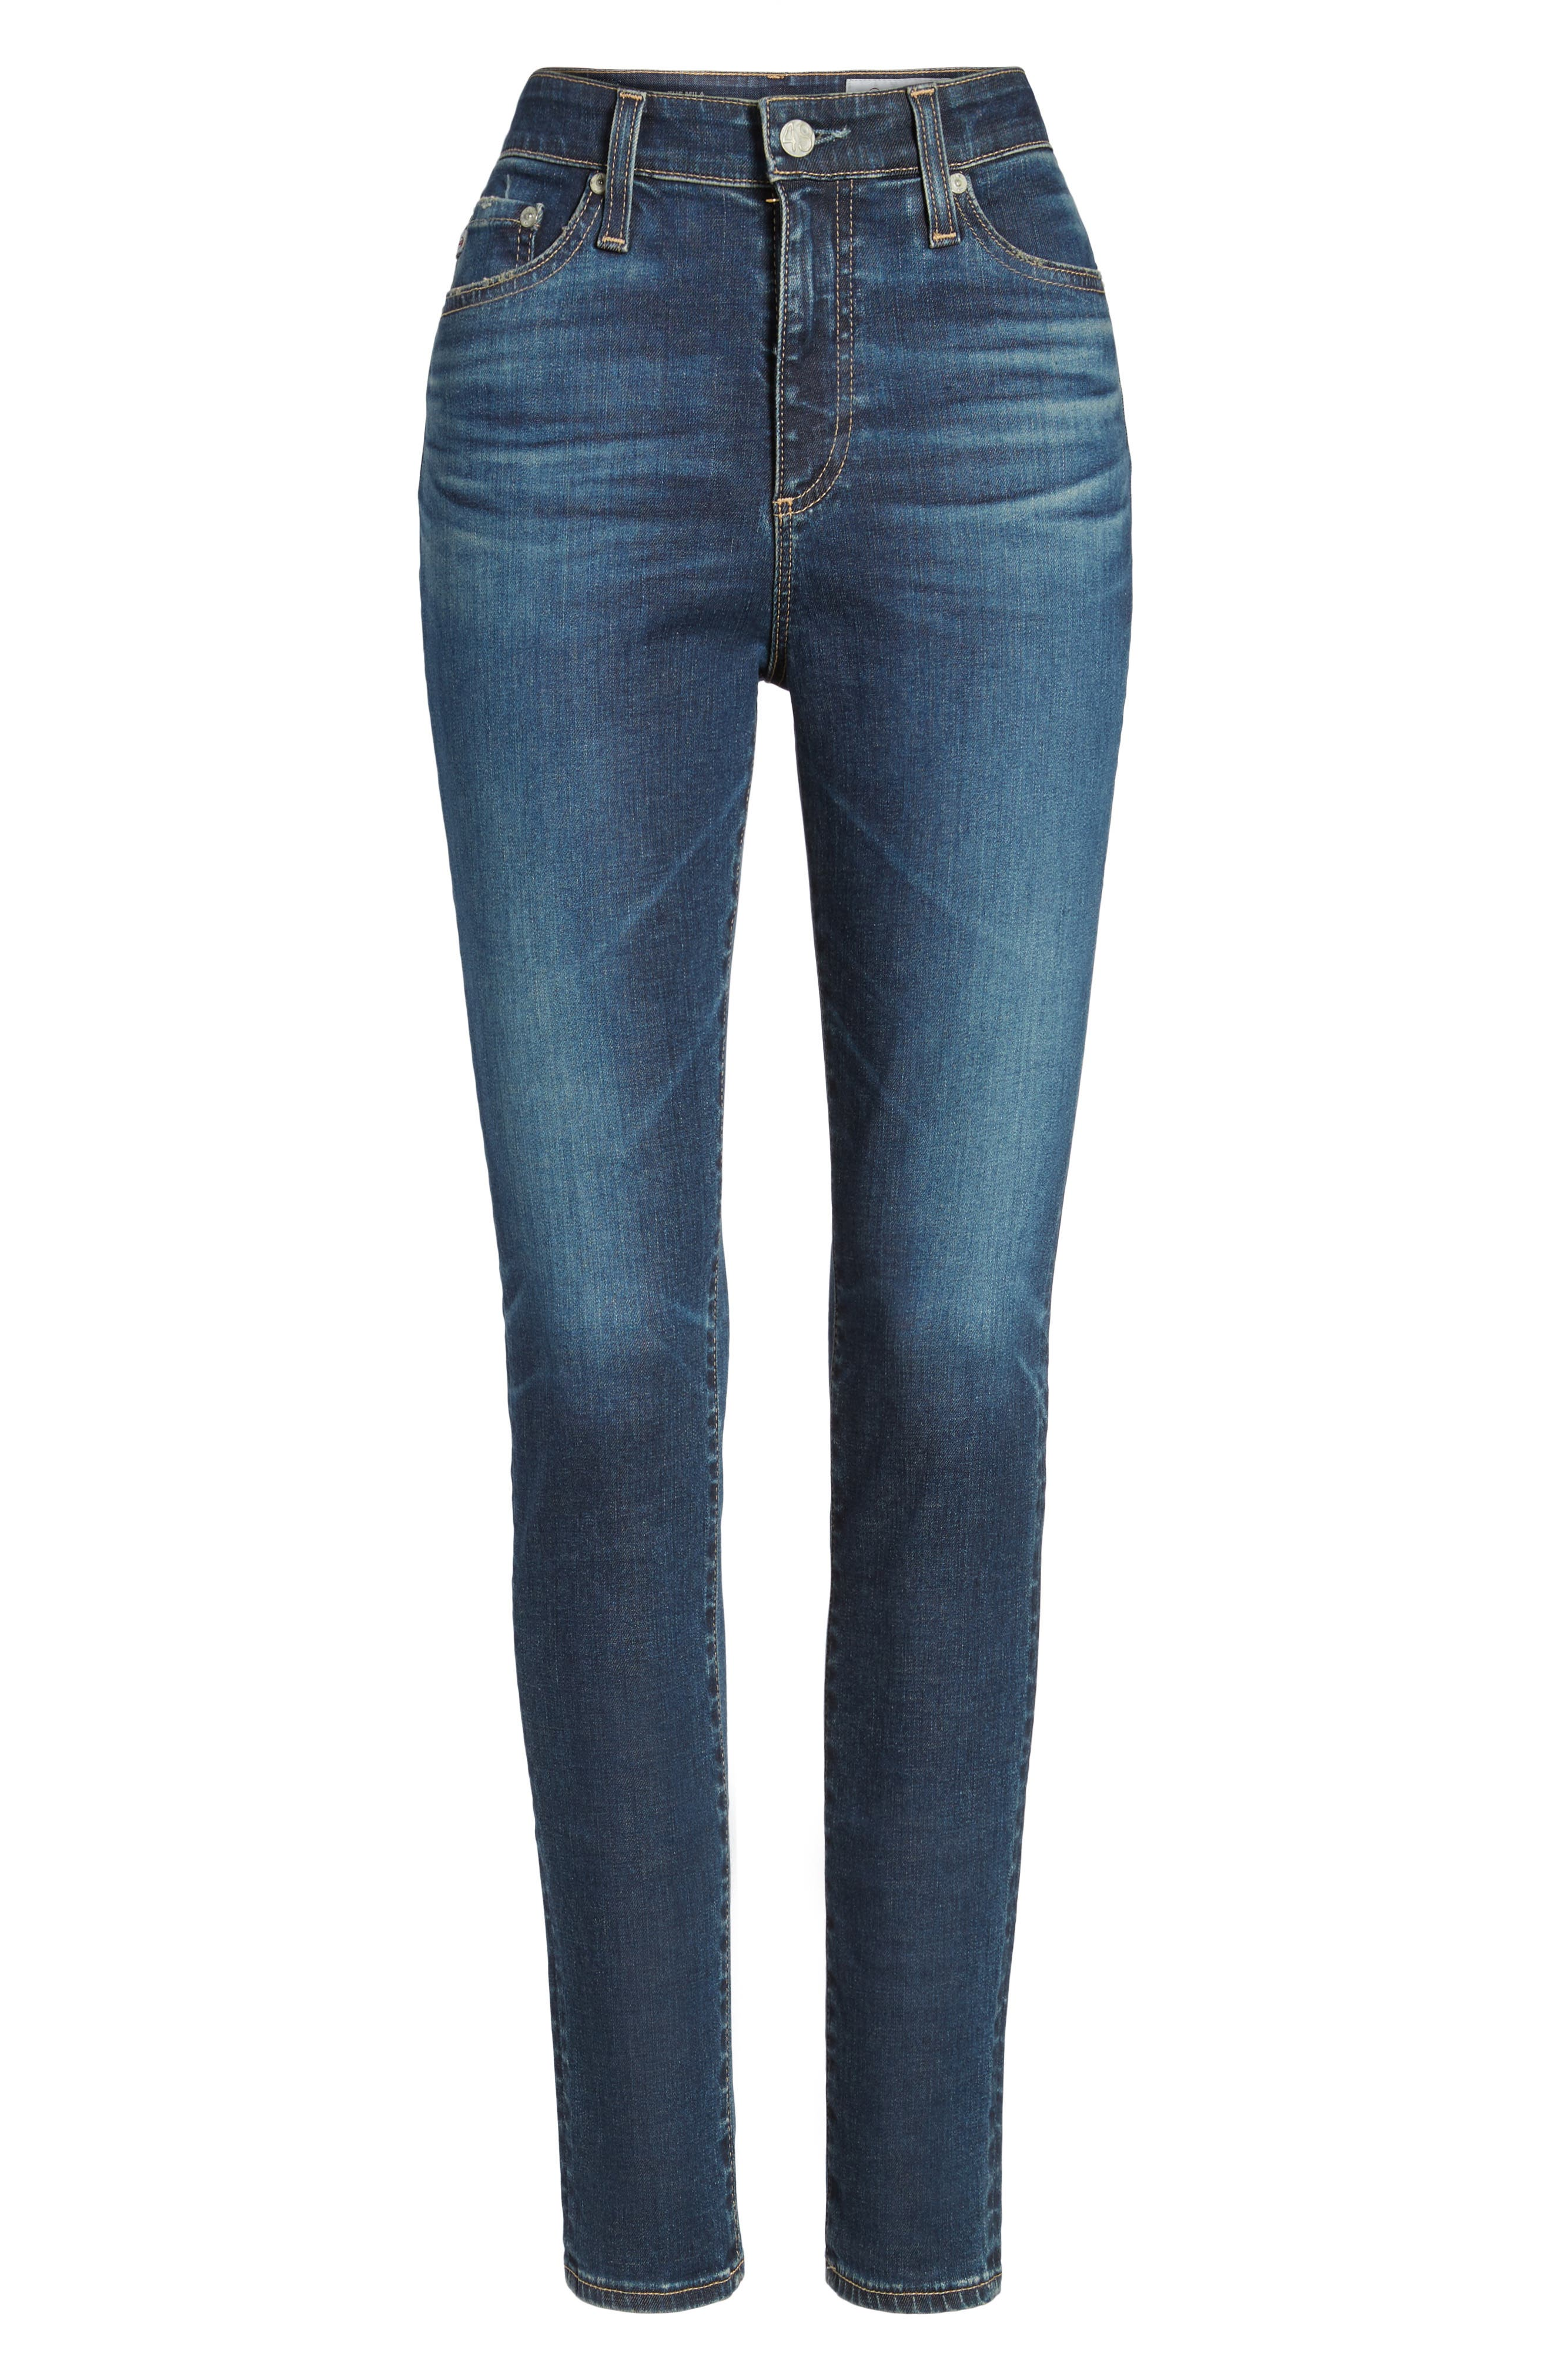 Mila High Rise Skinny Jeans,                             Alternate thumbnail 6, color,                             411